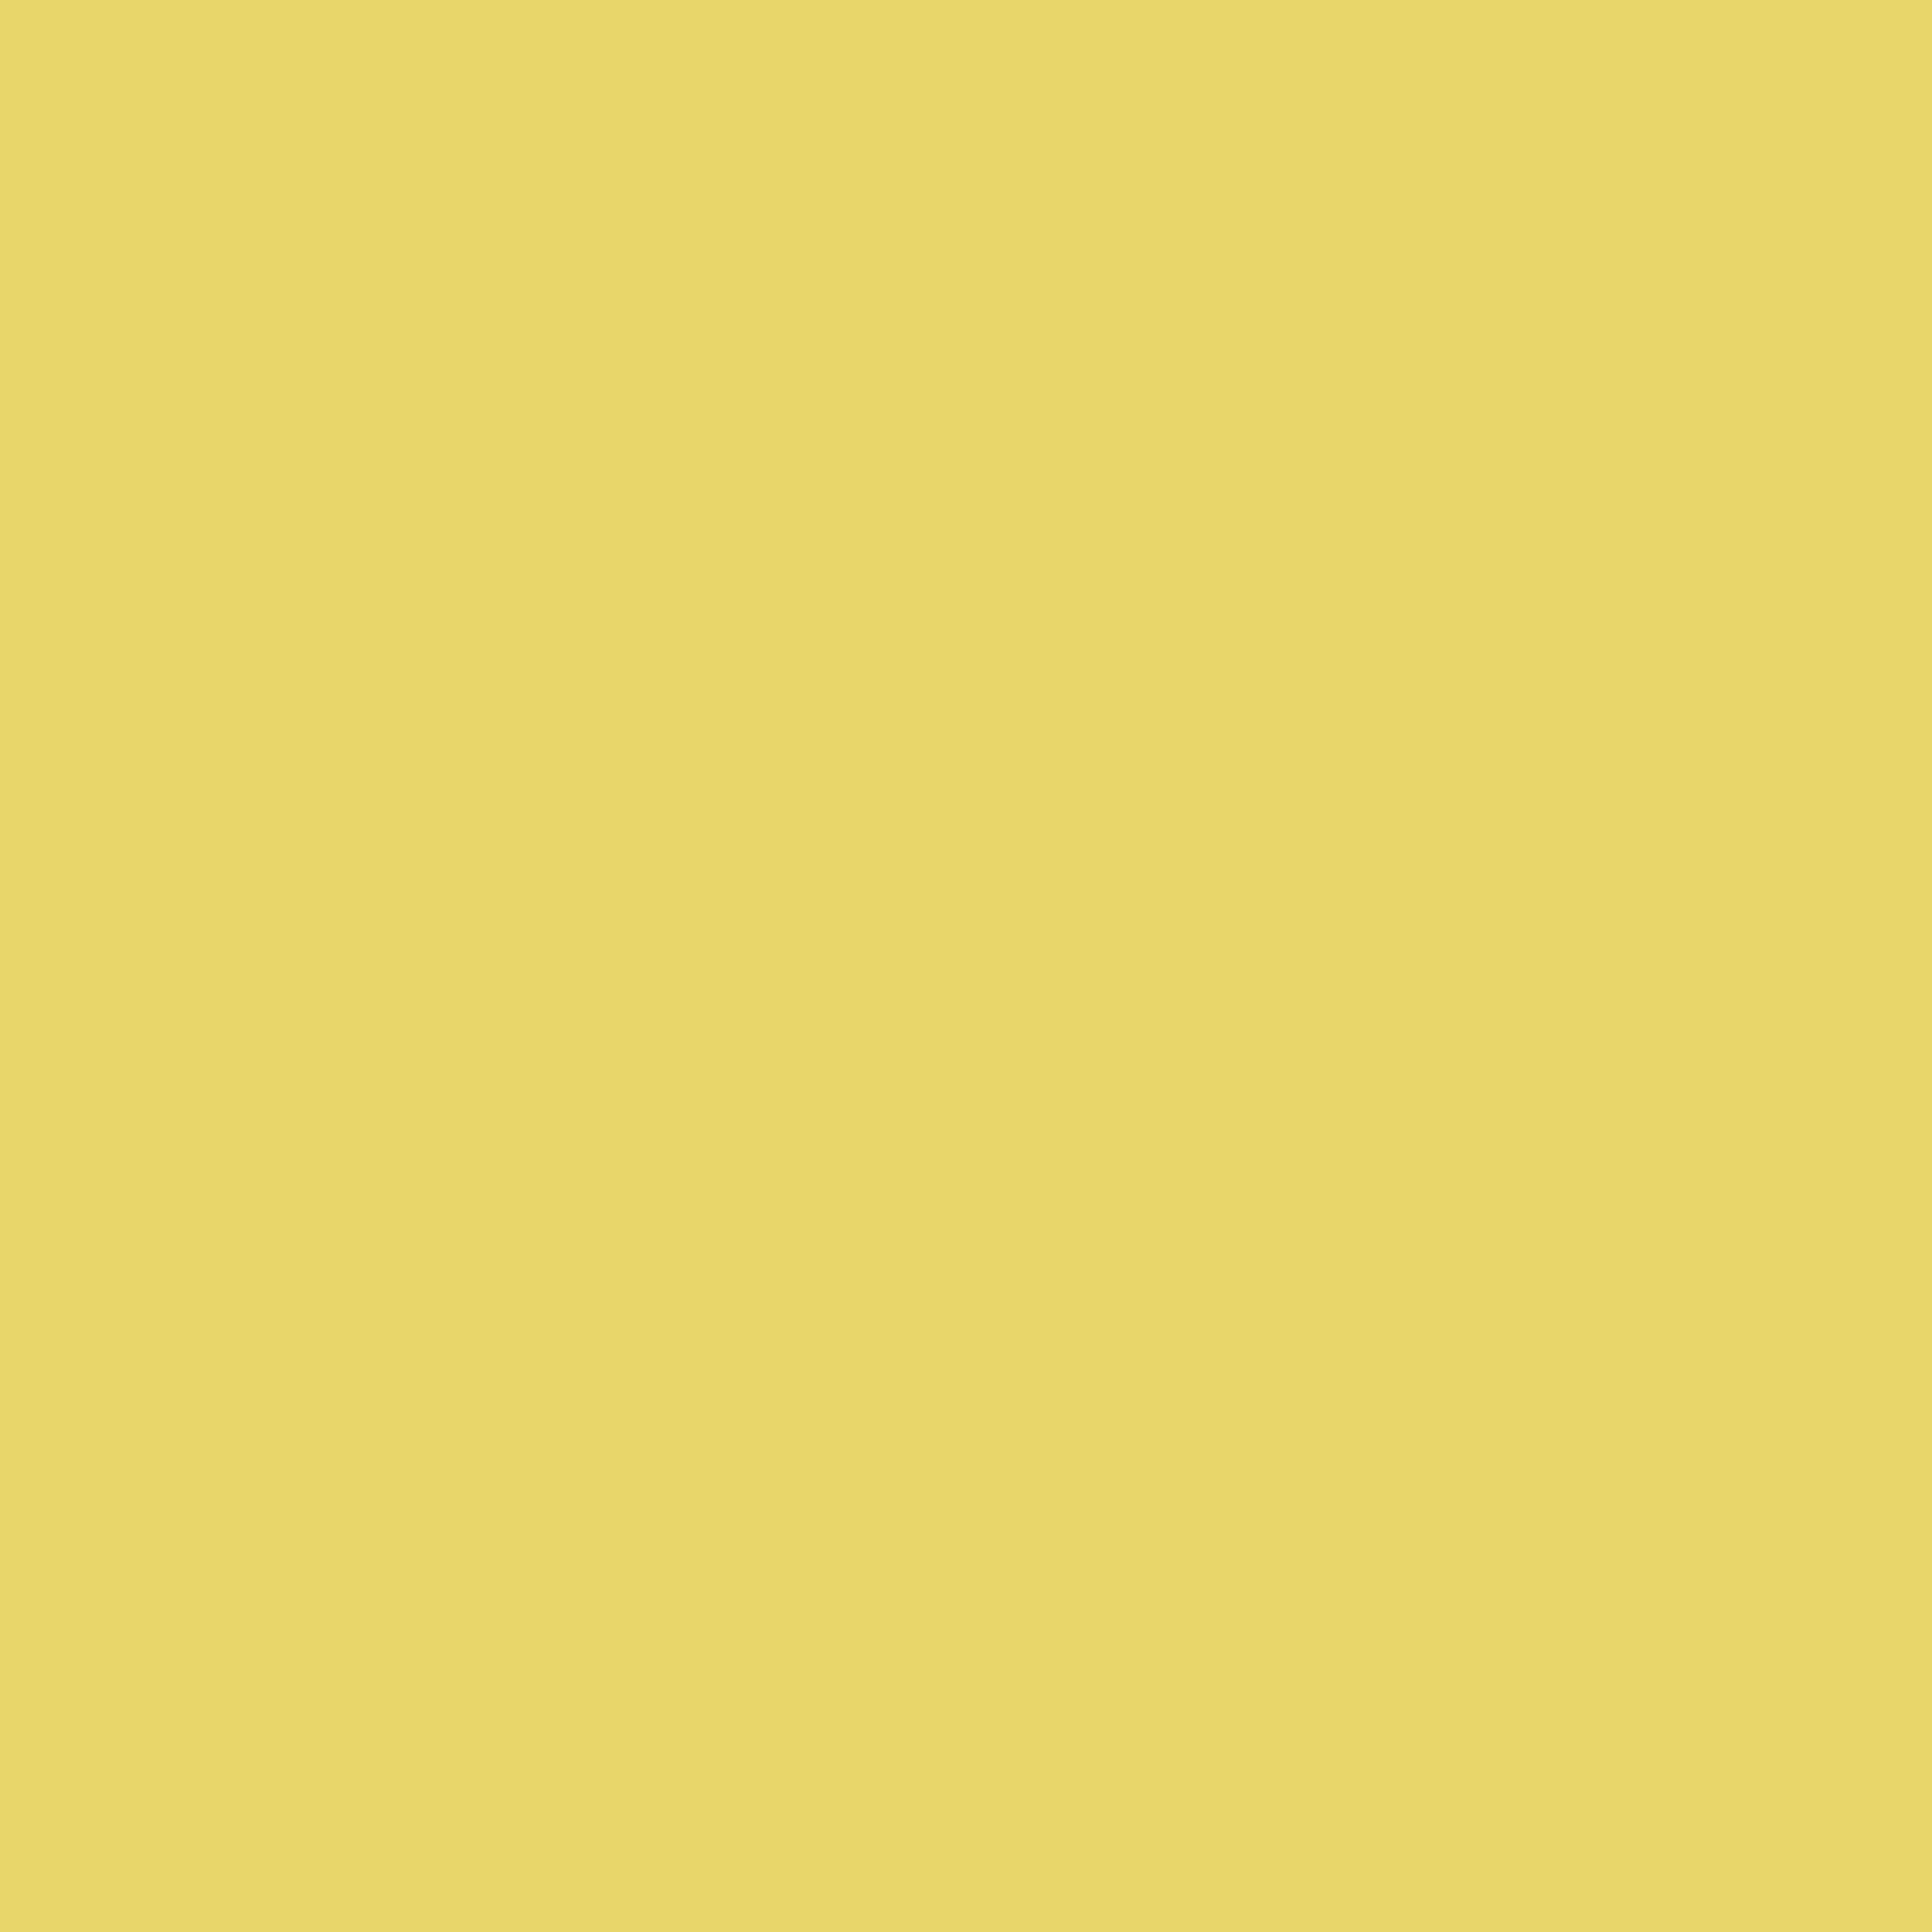 2048x2048 Hansa Yellow Solid Color Background